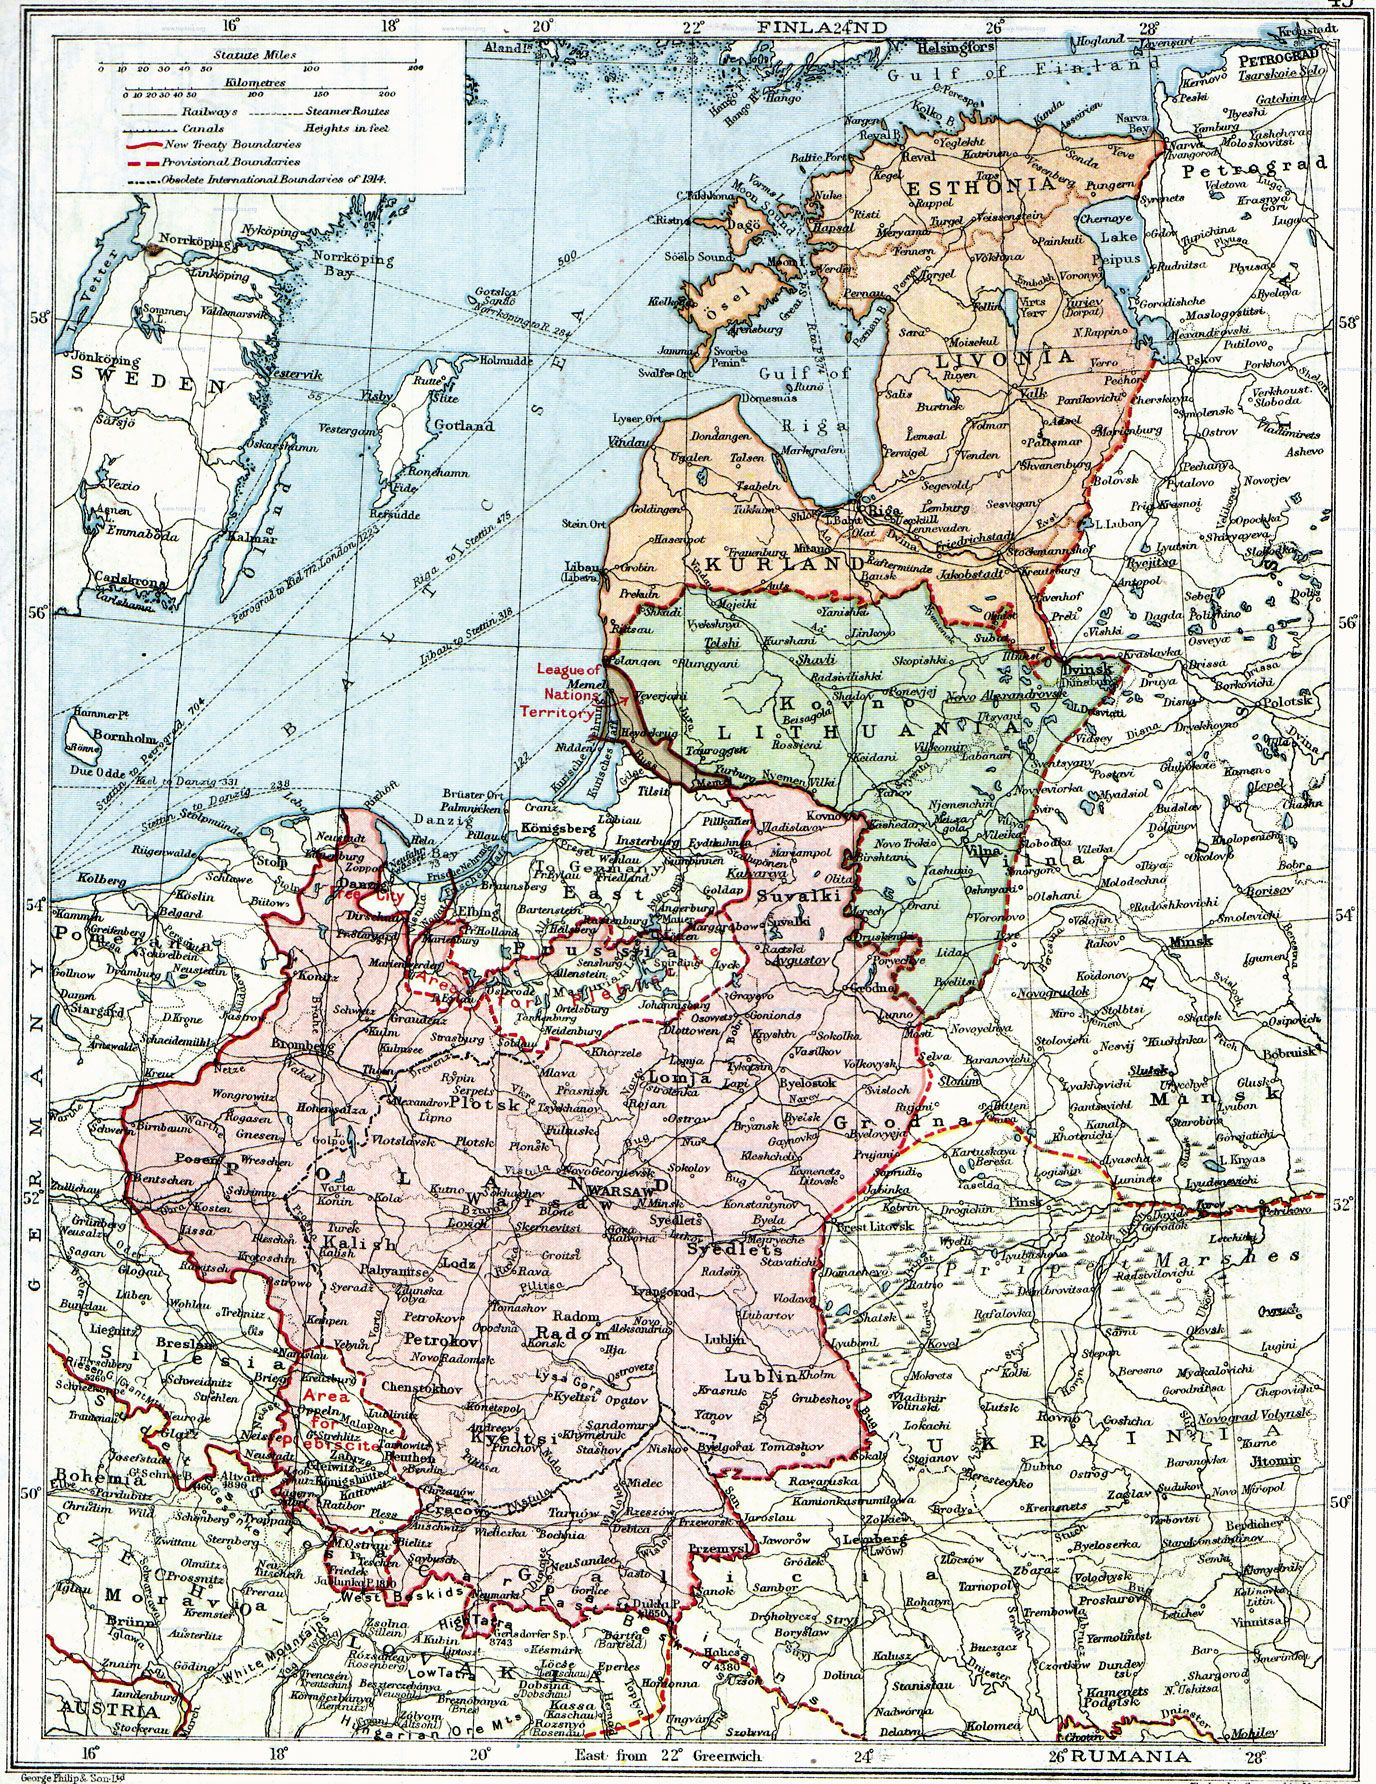 Poland  The New Baltic States The map shows the situation after